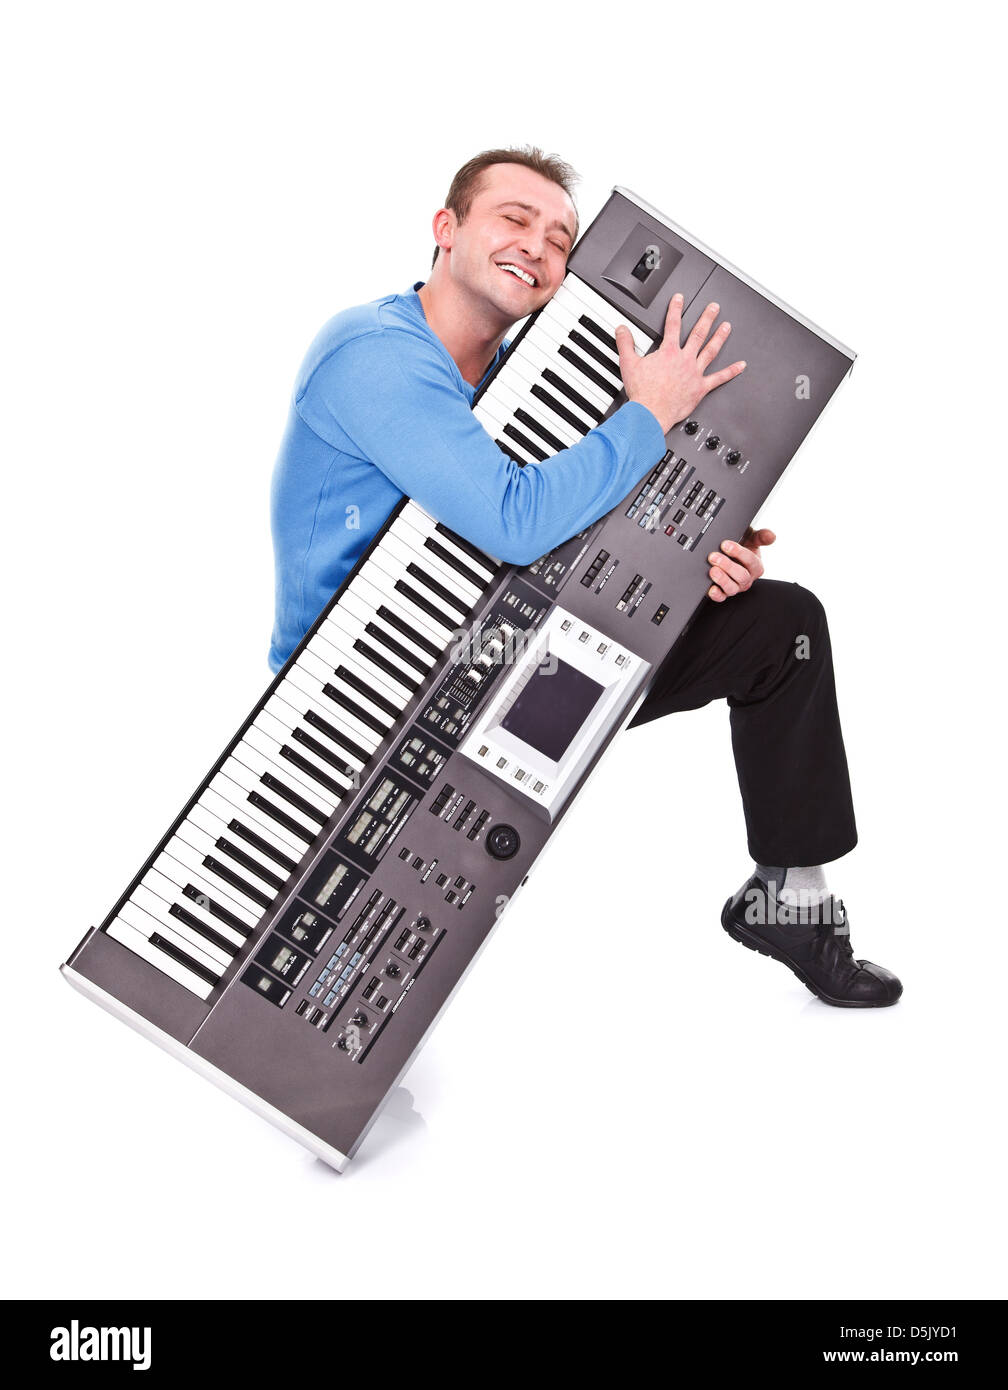 Young man passionately embraces his synthesizer - studio shot - Stock Image